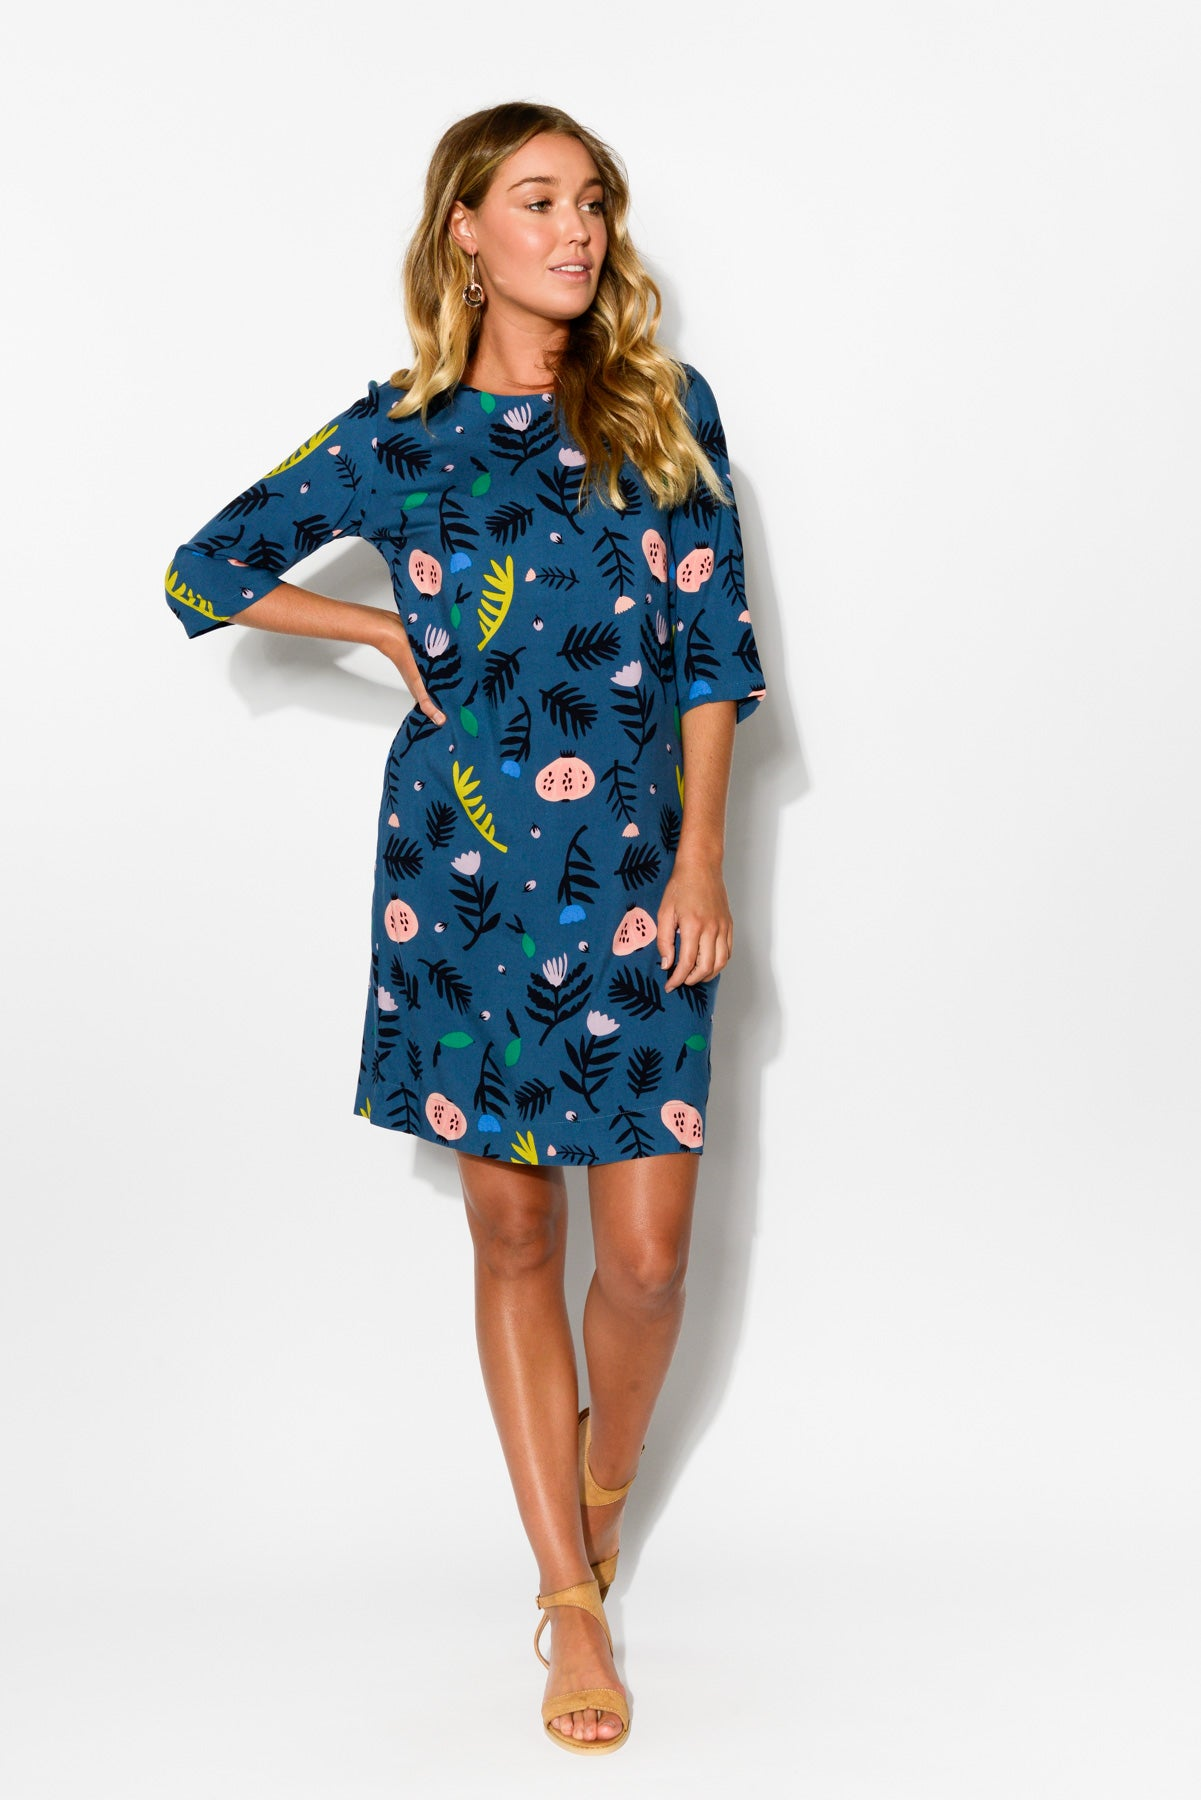 Autumn Fields Blue Shift Dress - Blue Bungalow